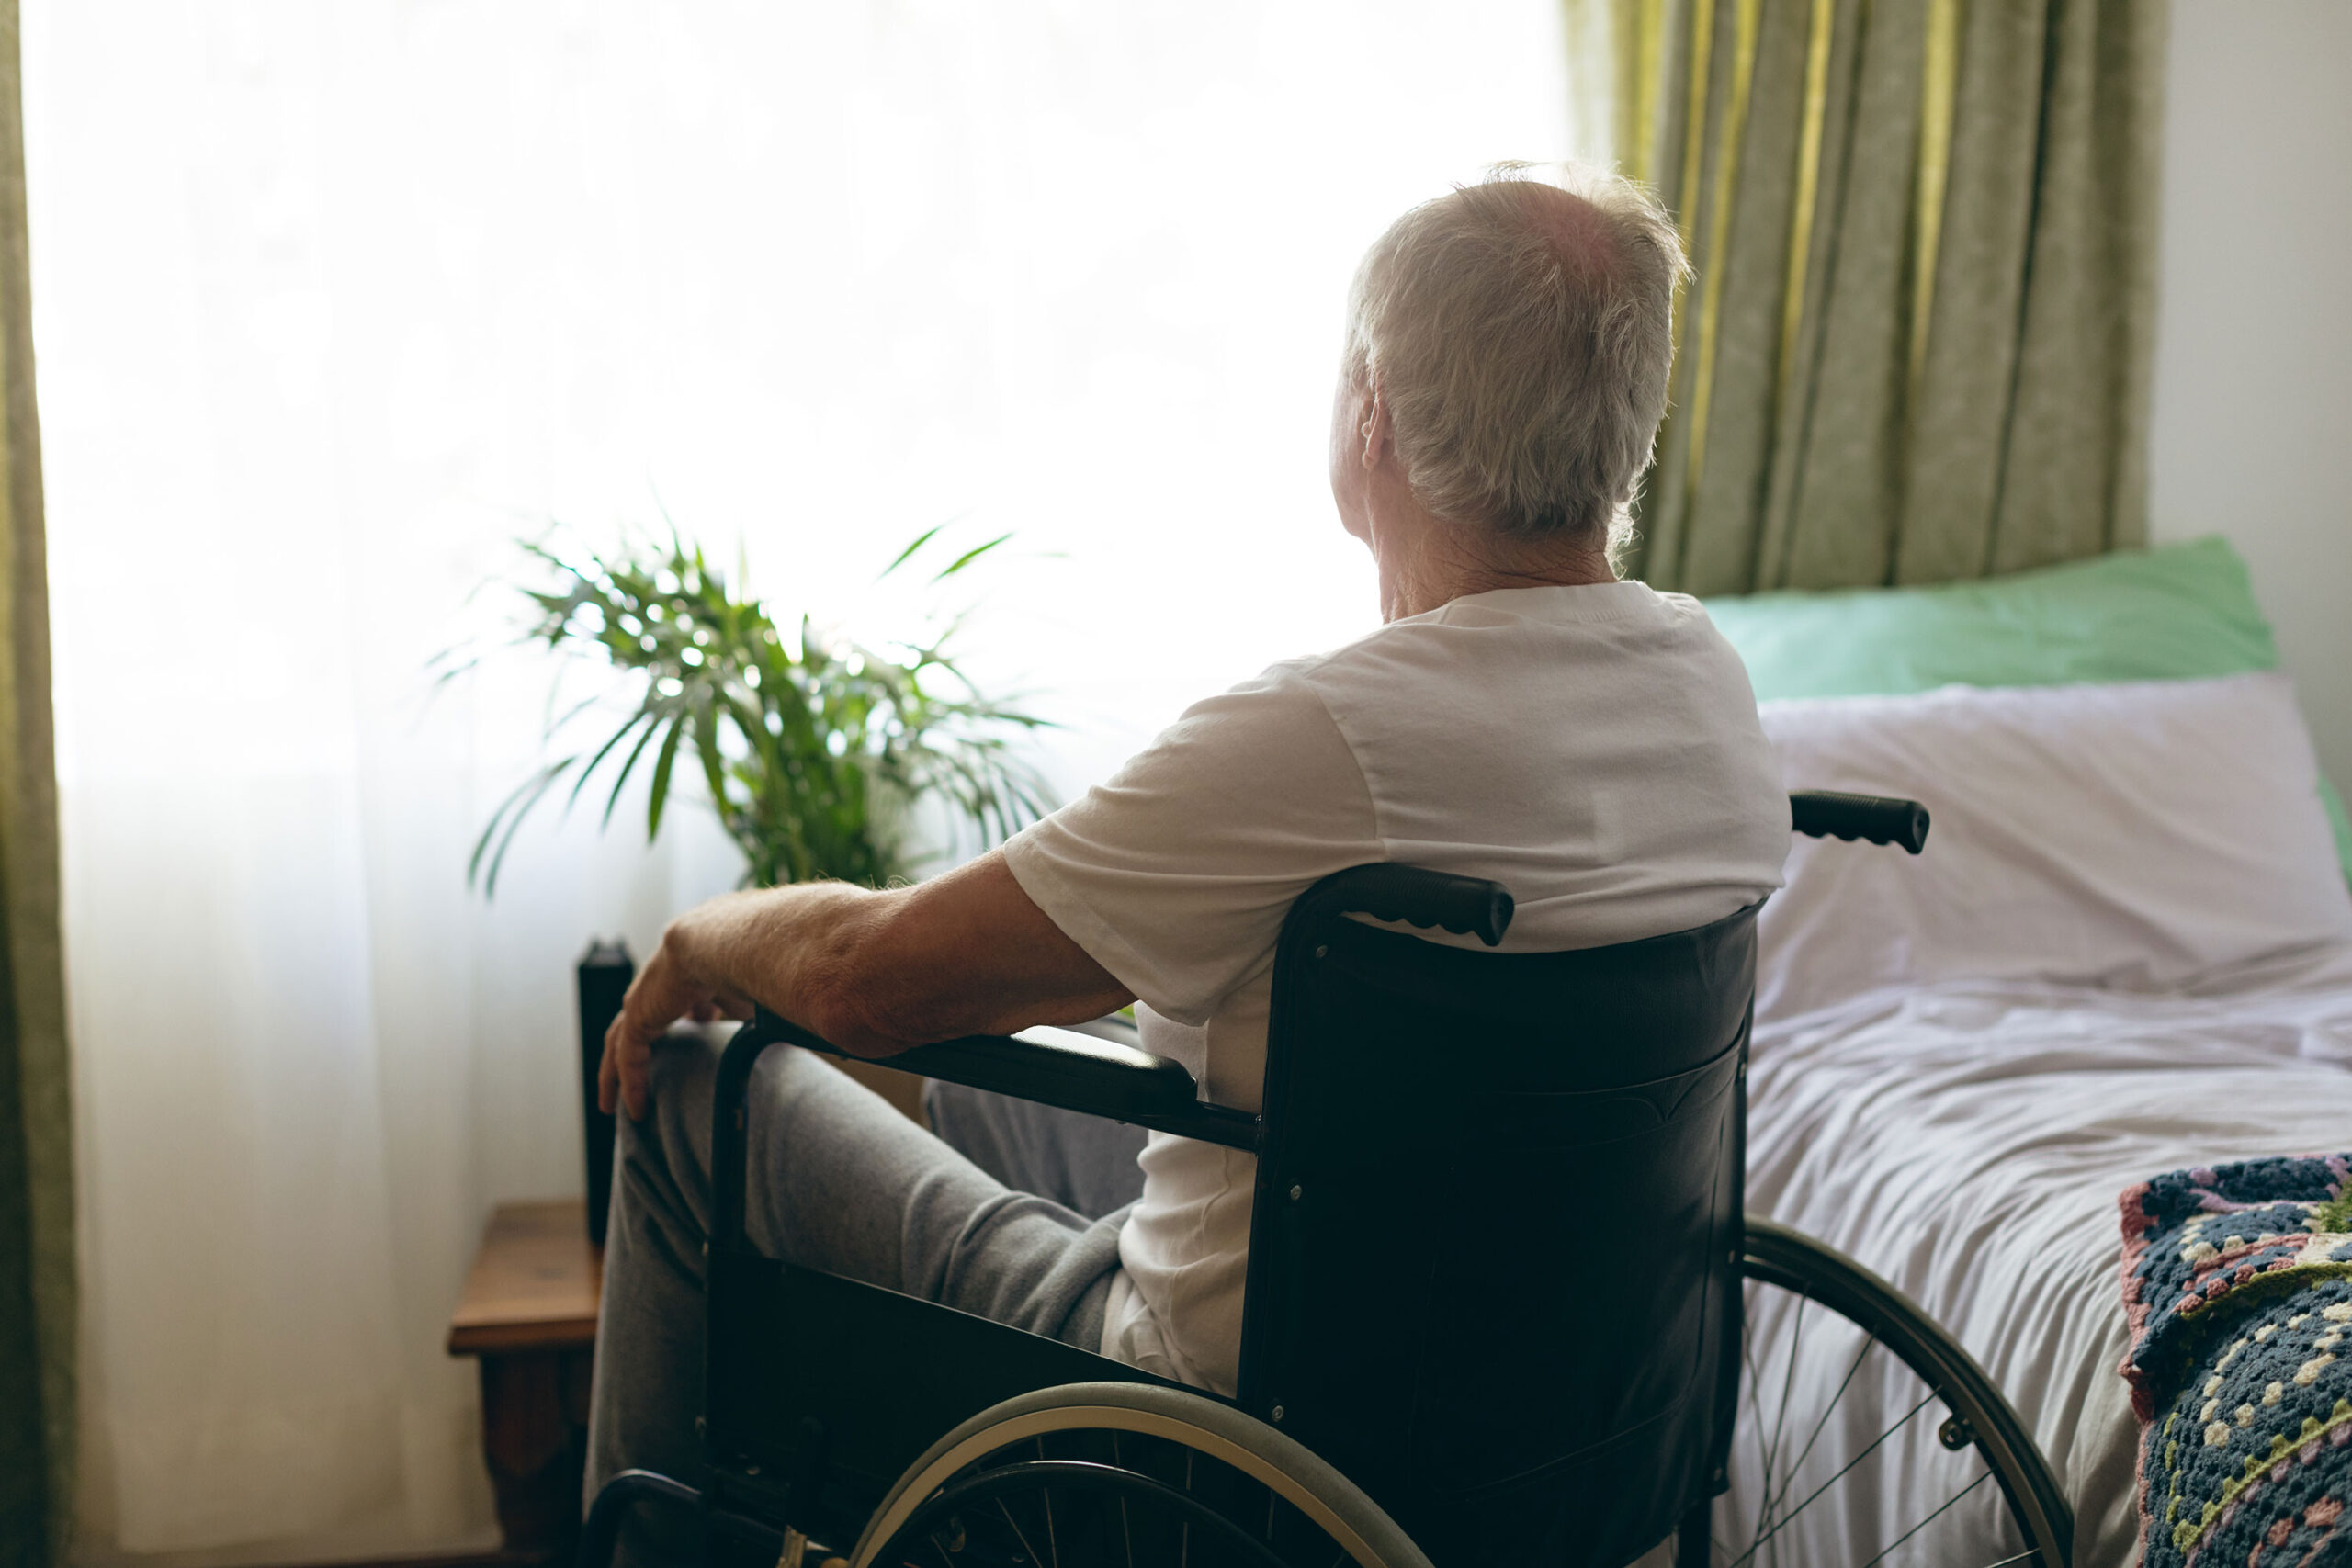 <i>Shutterstock</i><br/>Staff at long-term care facilities who are the most likely to interact with vulnerable patients are the least likely to have been vaccinated